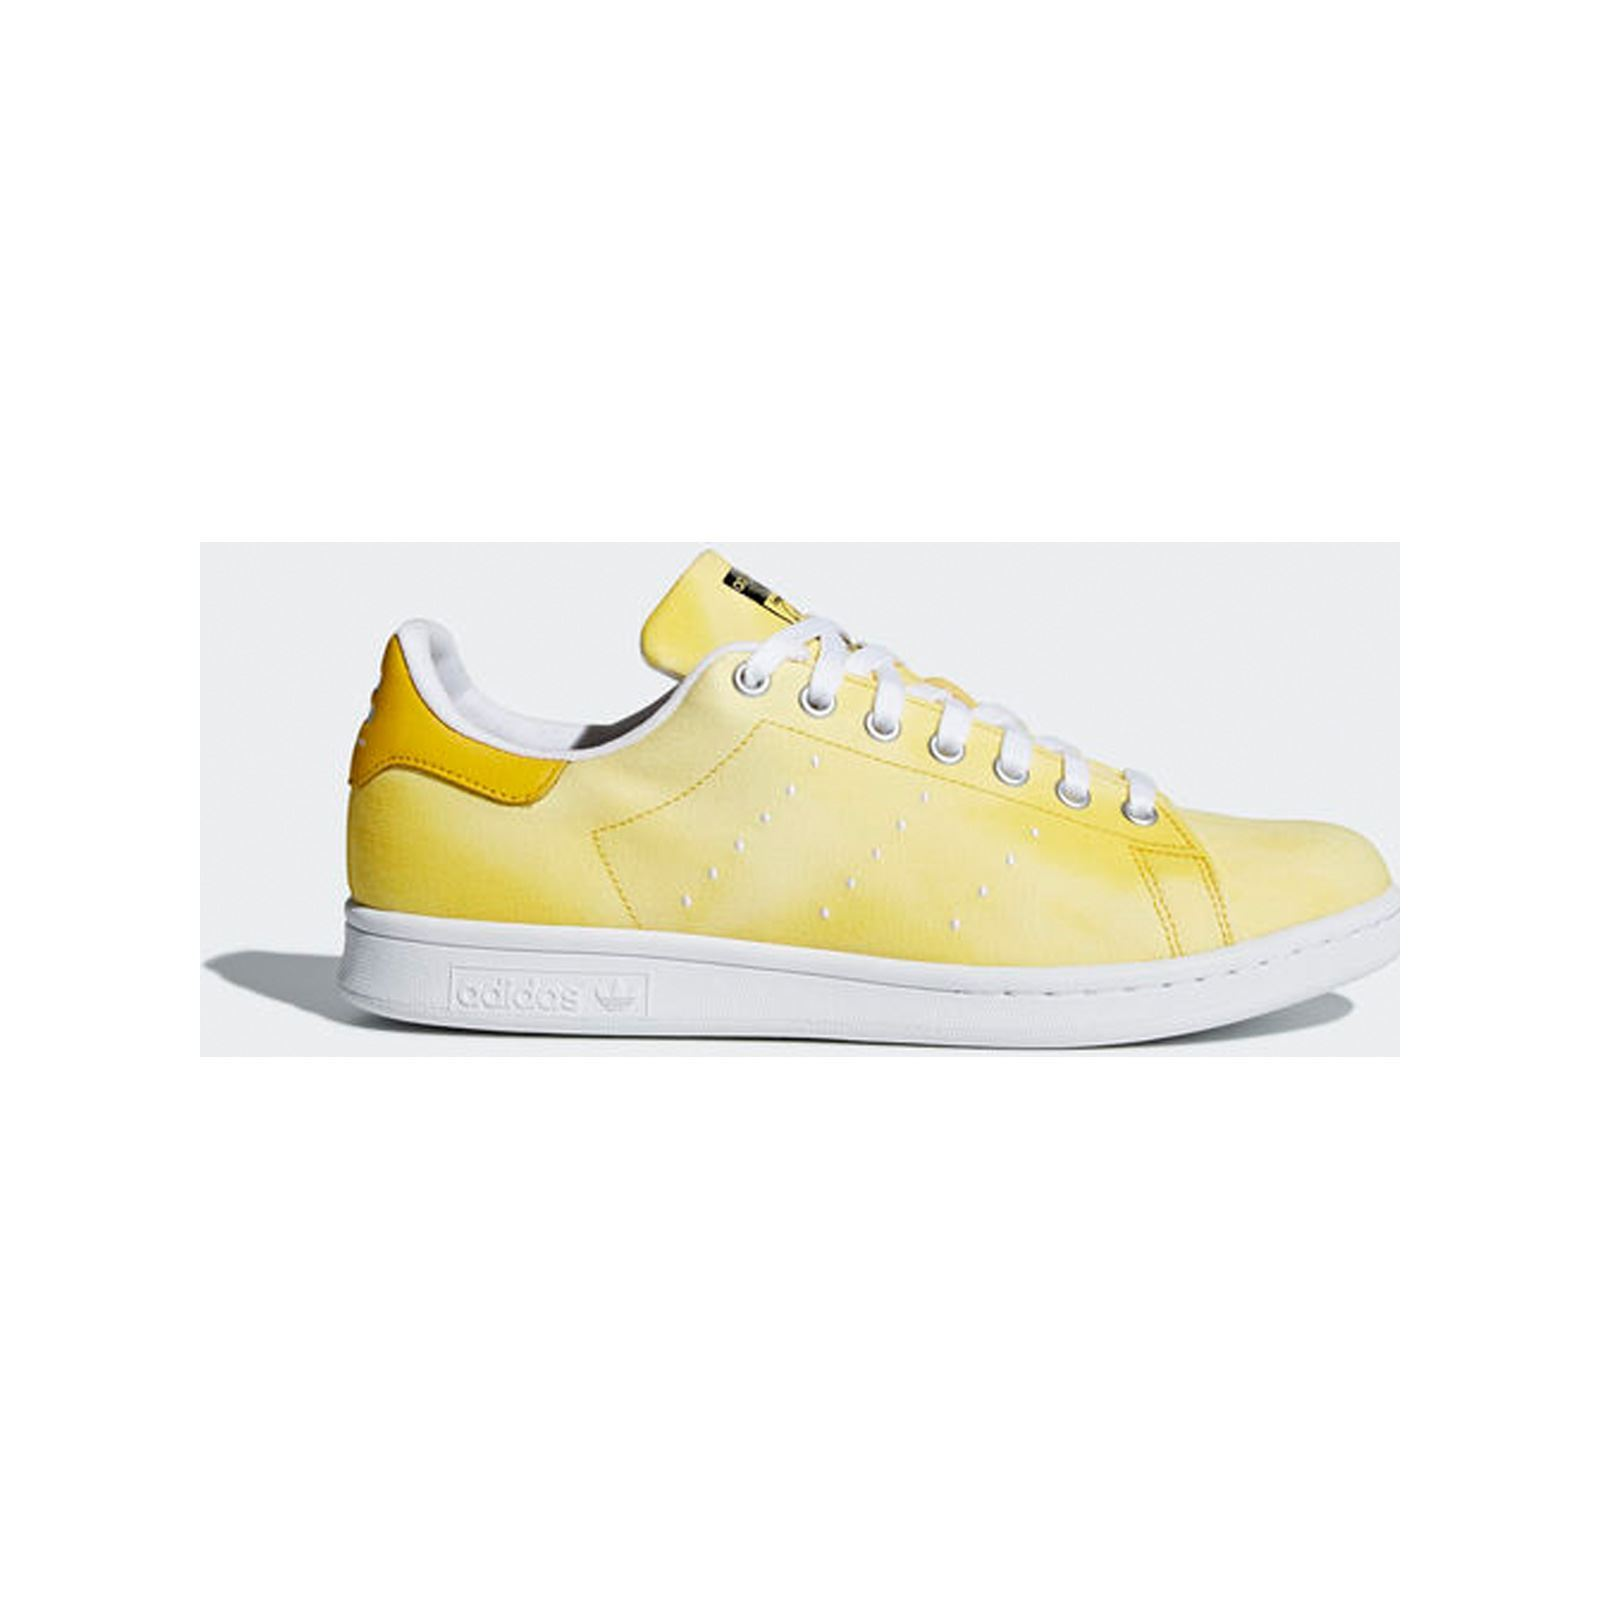 06f2bd255 ADIDAS ORIGINALS PW HU Holi Stan Smith - Baskets en cuir bi-matière - jaune